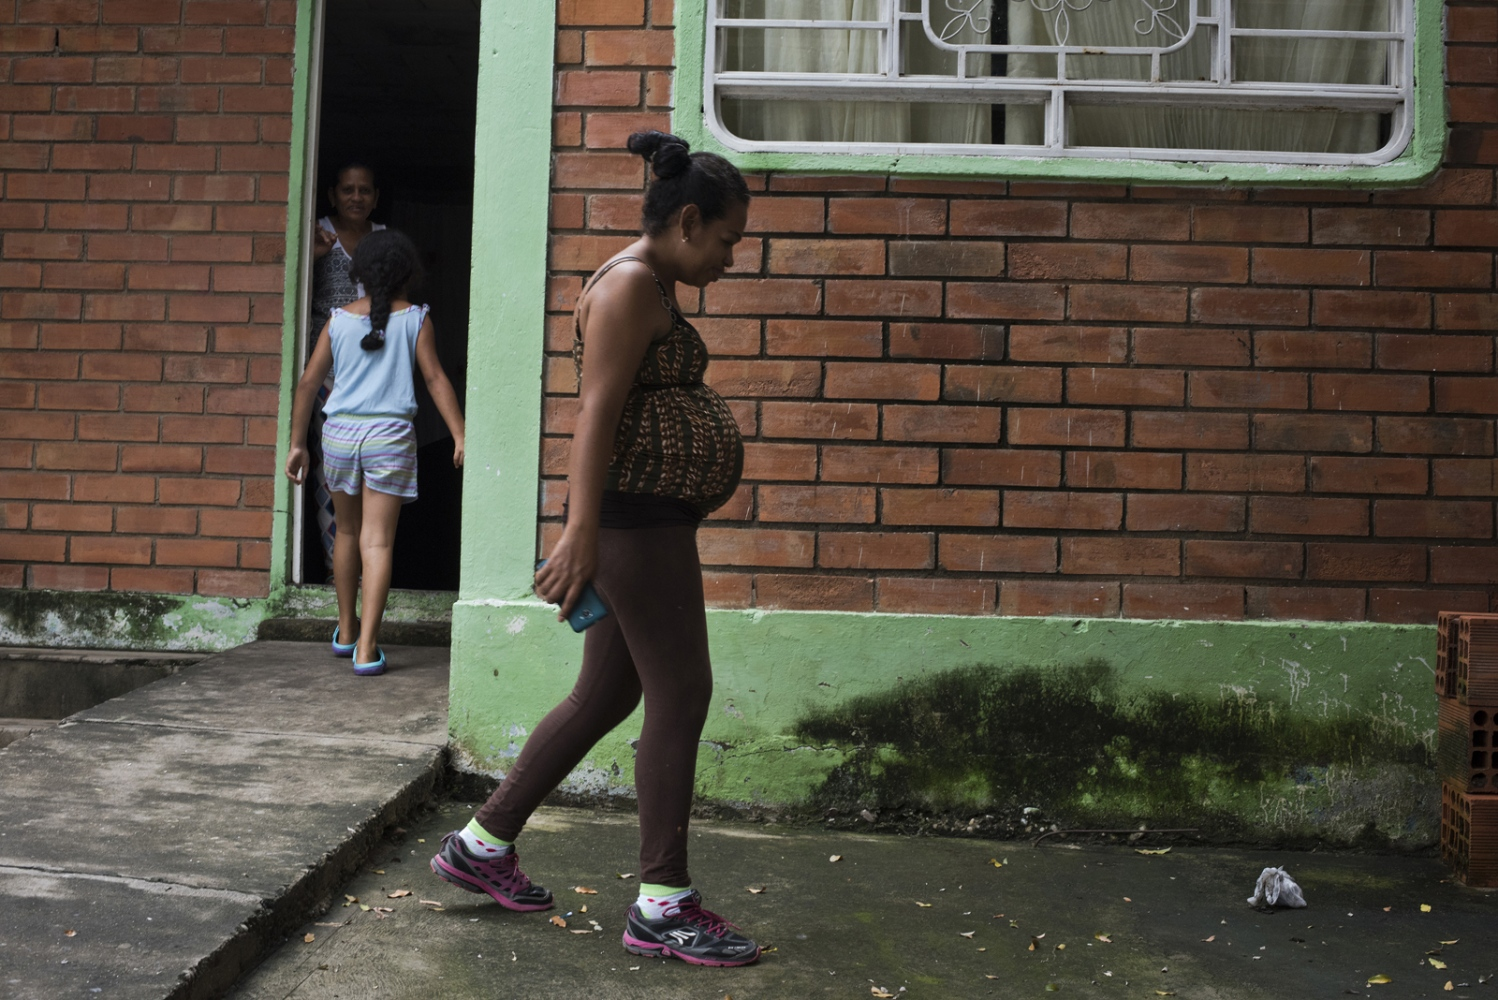 Esperenza Cumplido Rivera, a Colombian woman who is eight months pregnant moved back to Colombia after 14 years in Venezuela due to the lack of health services in Venezuela in front of her house in the La Concordia neighborhood on March , 2017 in Cucuta, Colombia.